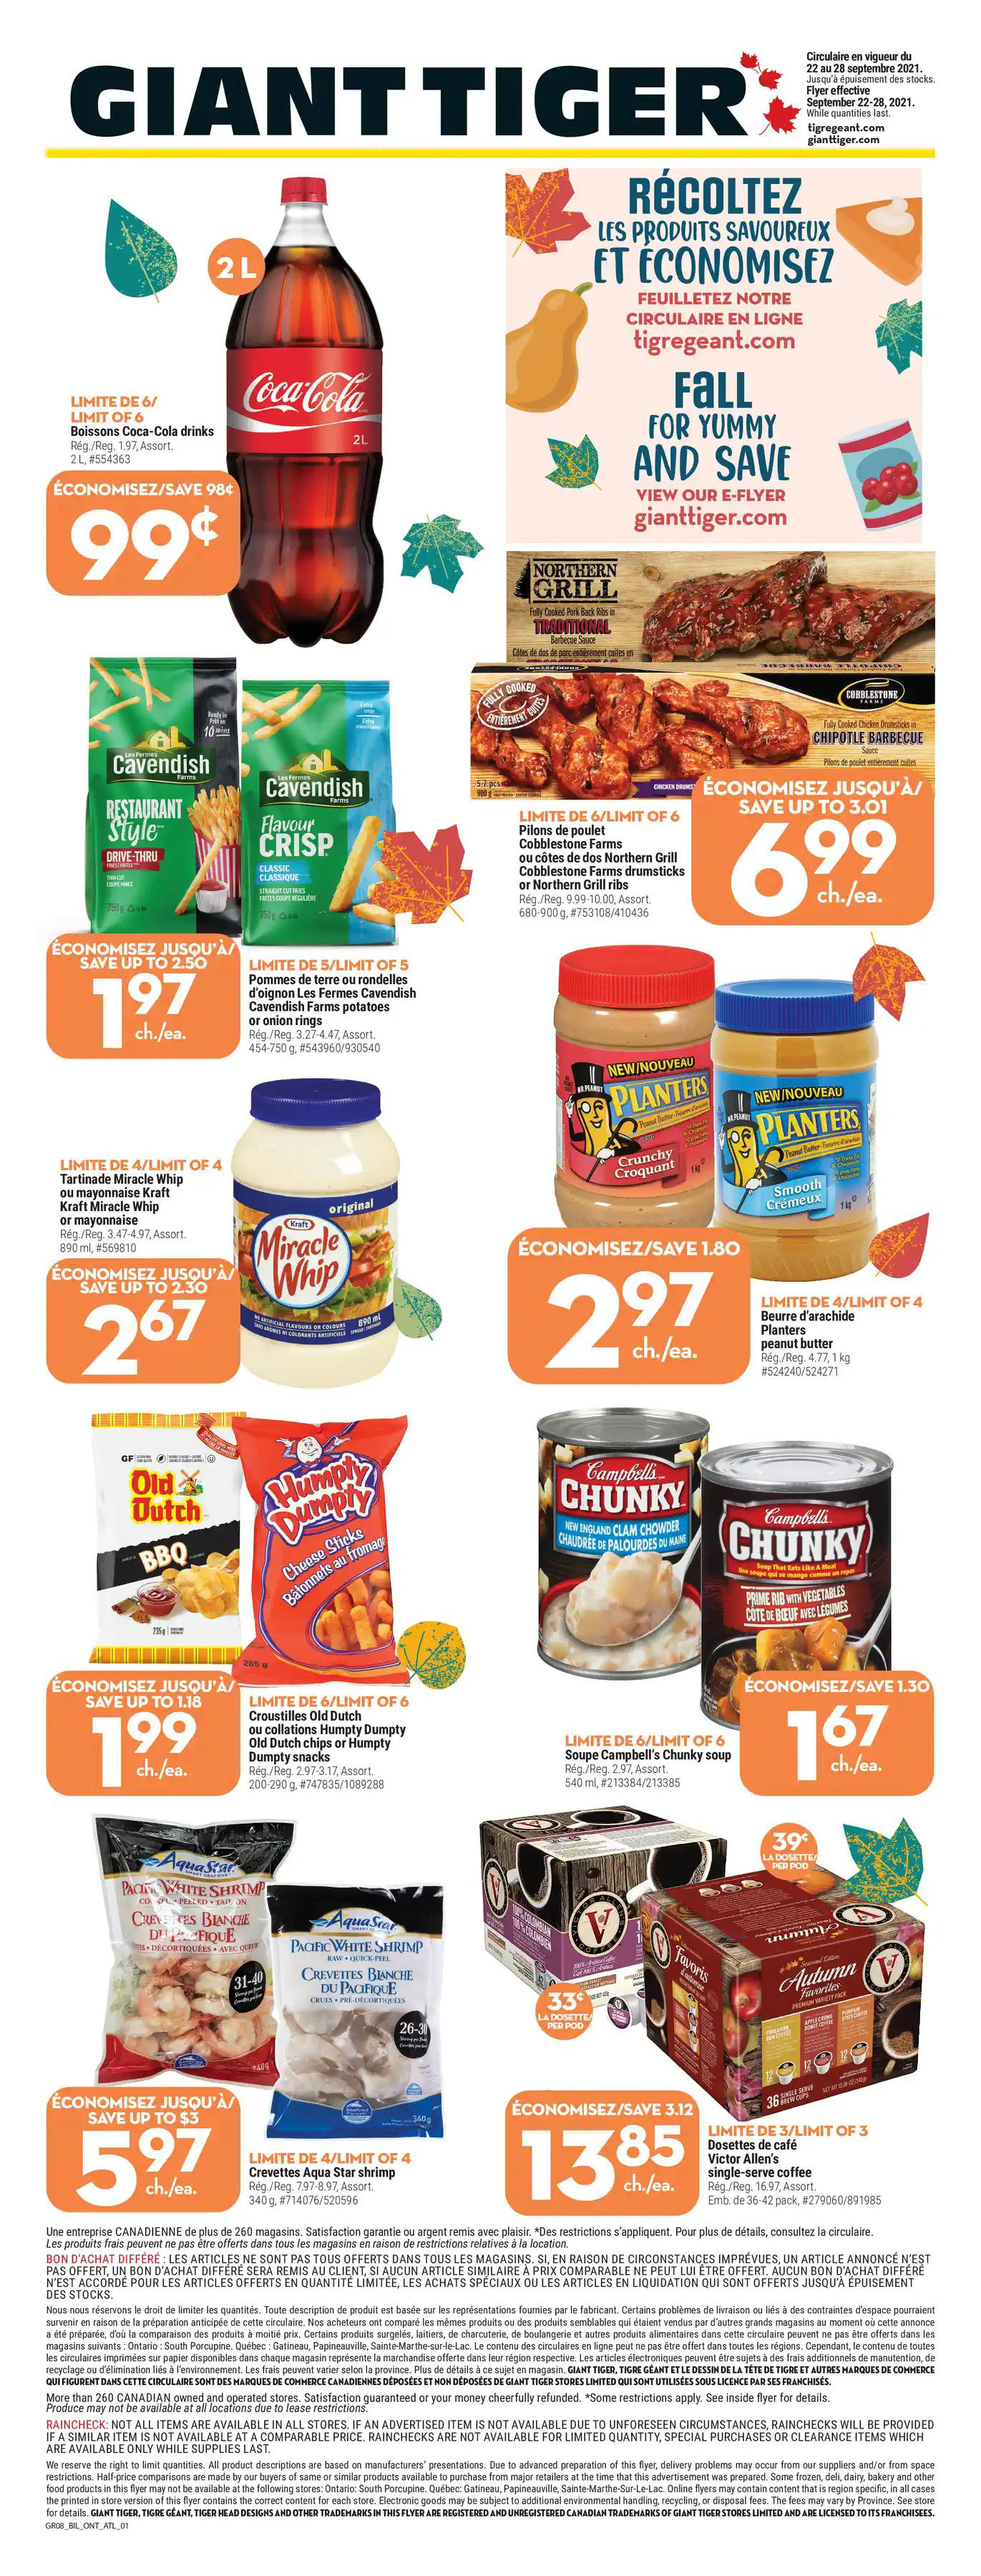 Giant Tiger - Weekly Flyer Specials